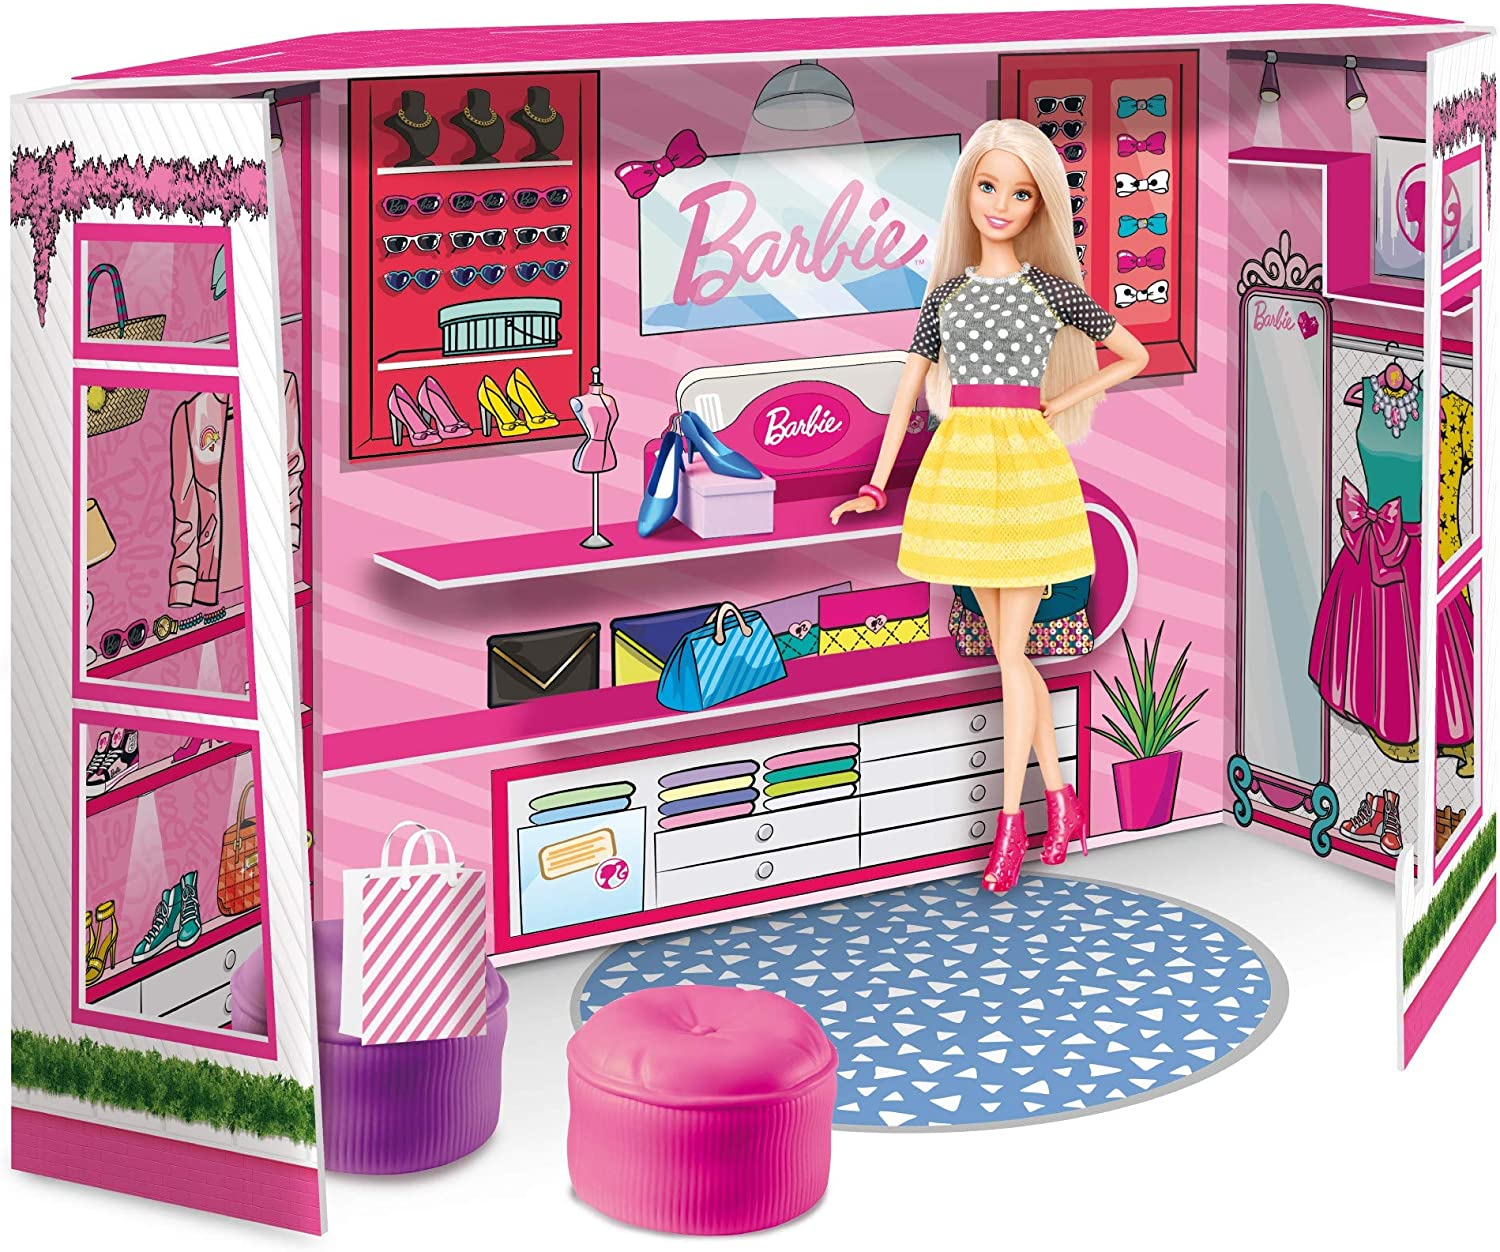 Poupée Barbie boutique fashion en promotion